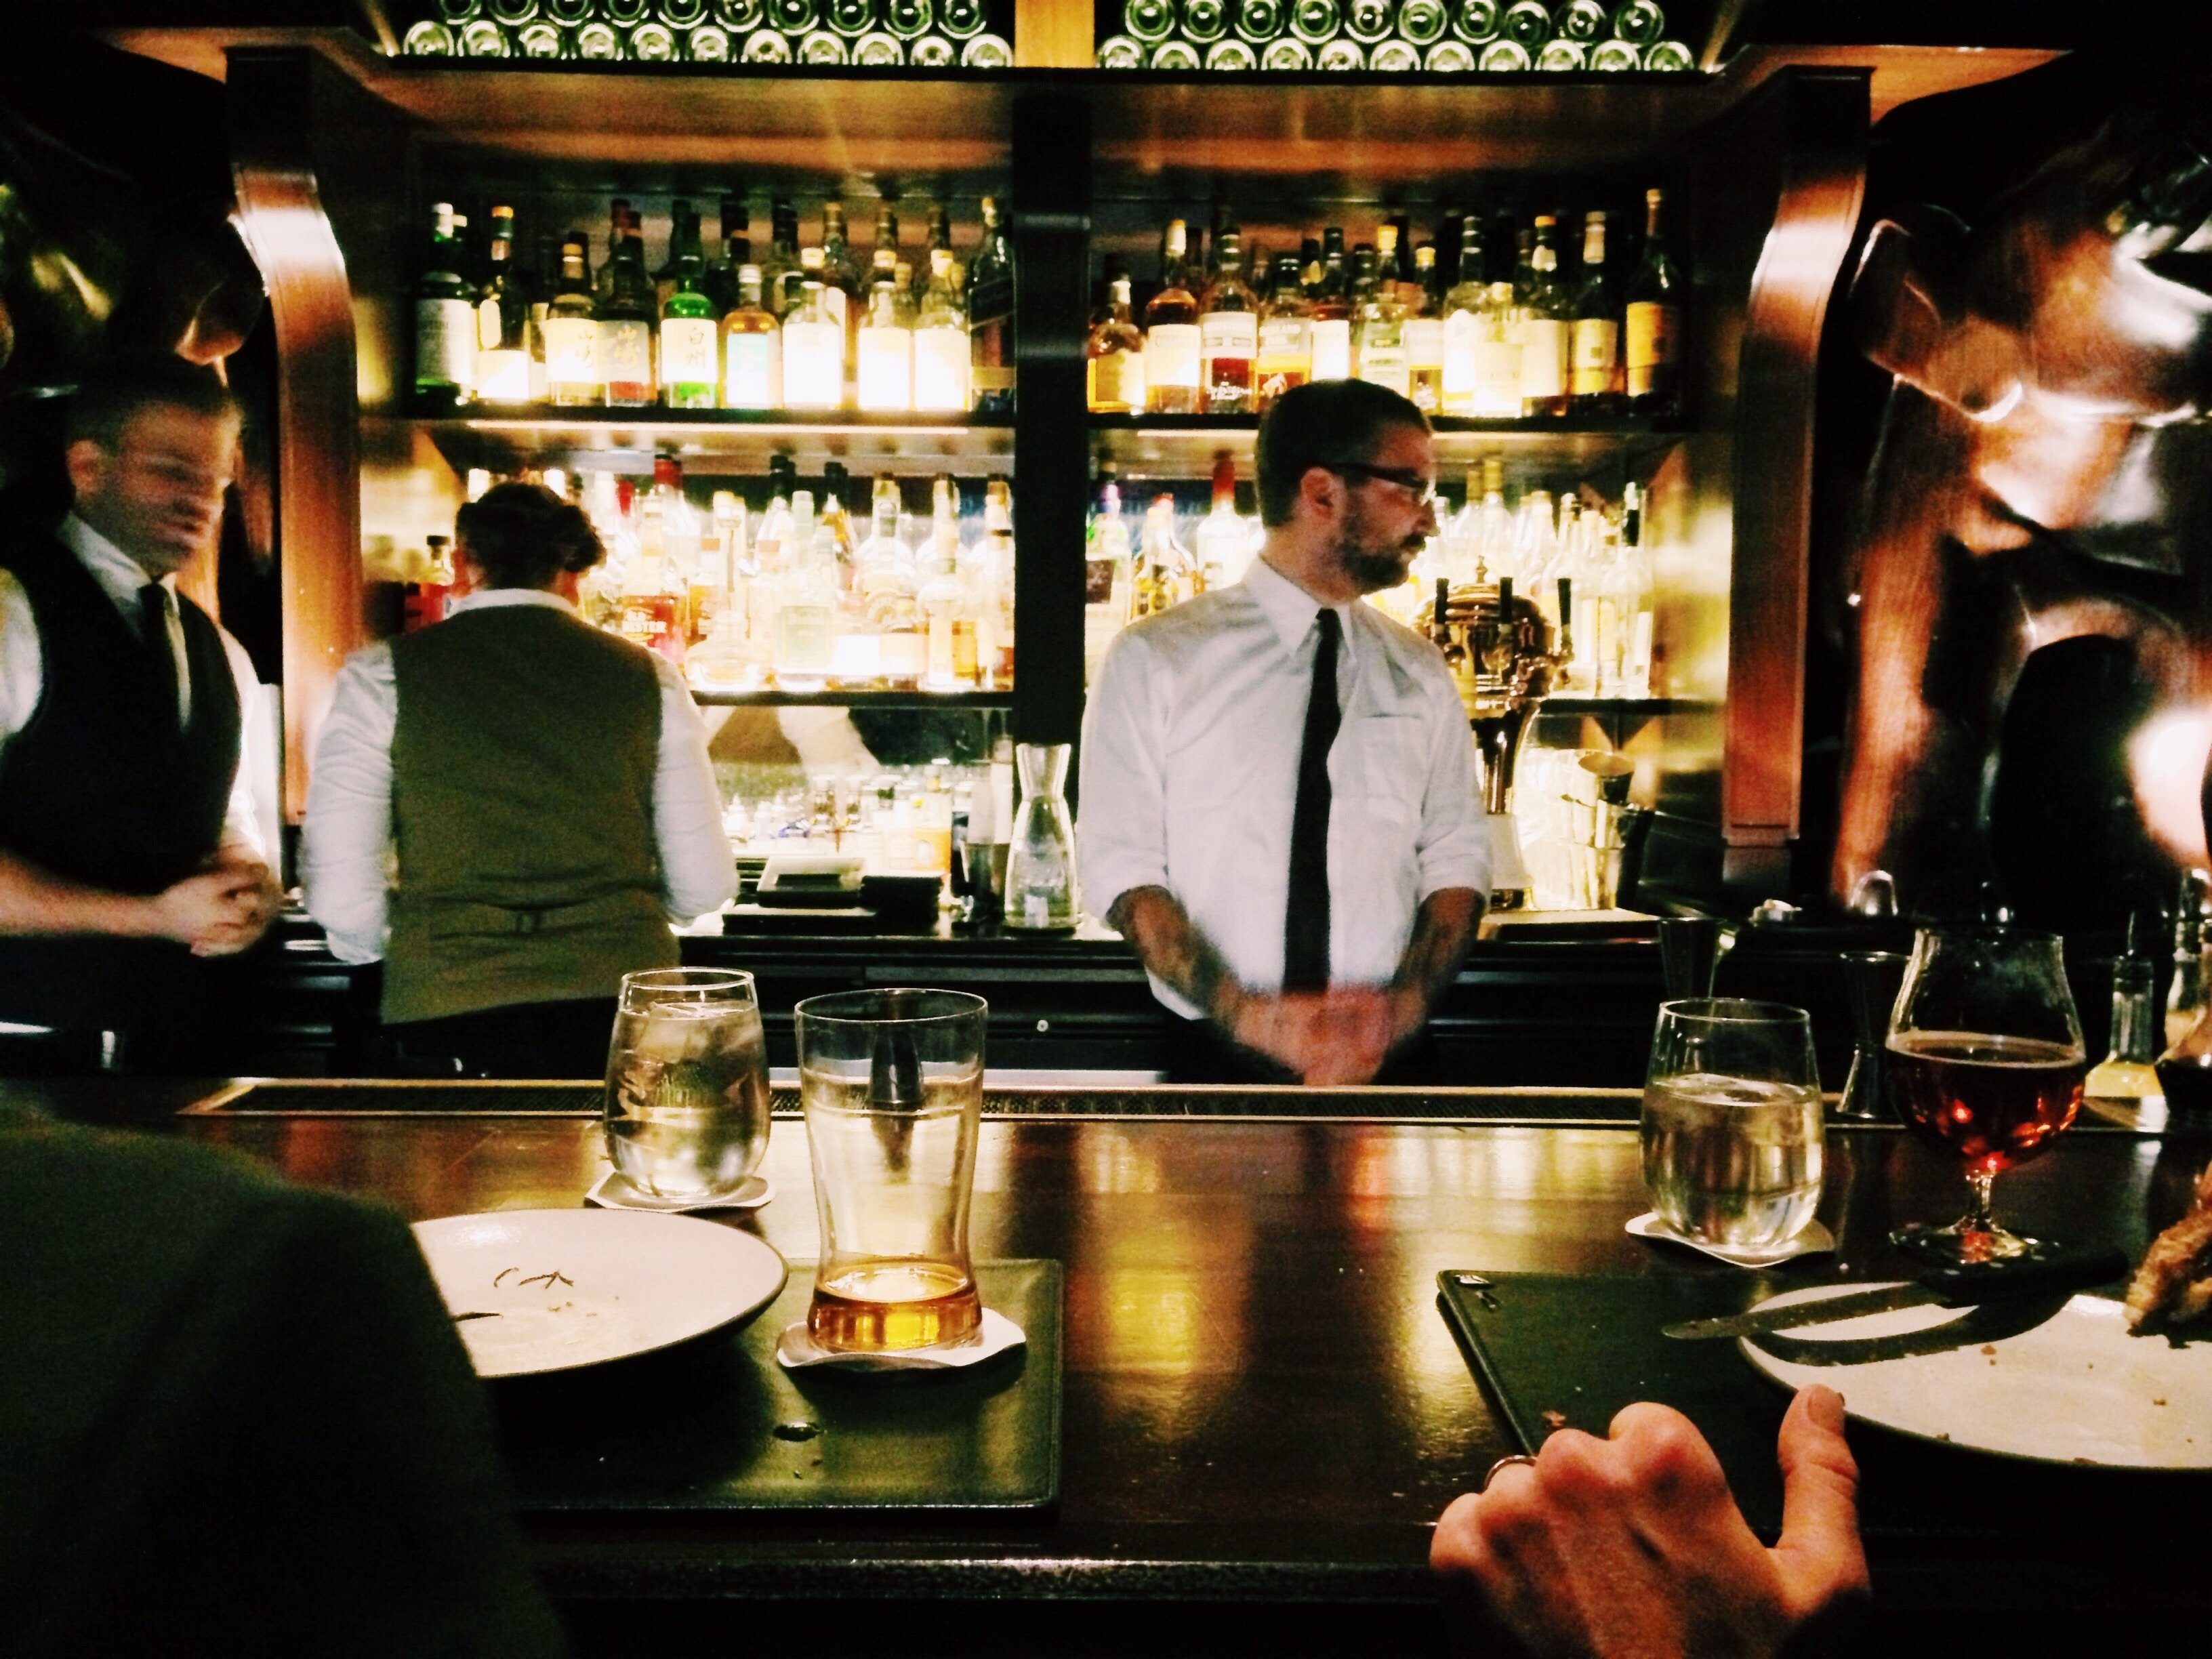 labor cost. Bartender standing behind the bar.